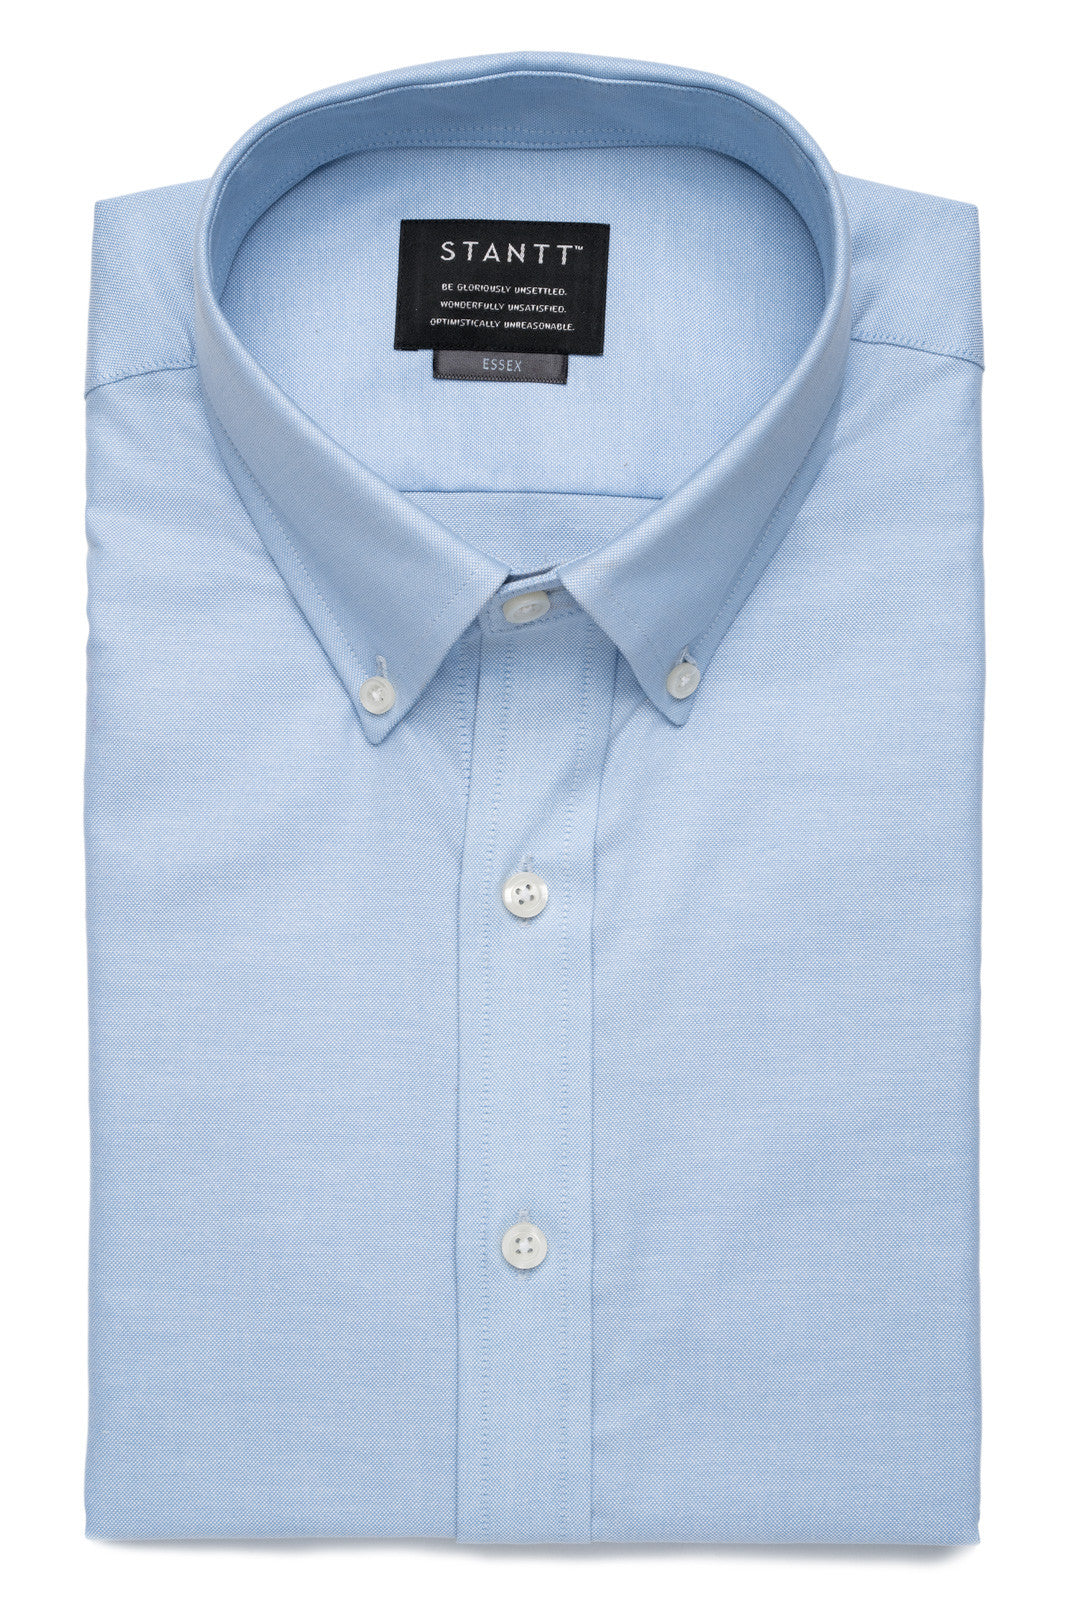 Light Blue Oxford: Button-Down Collar, Barrel Cuff